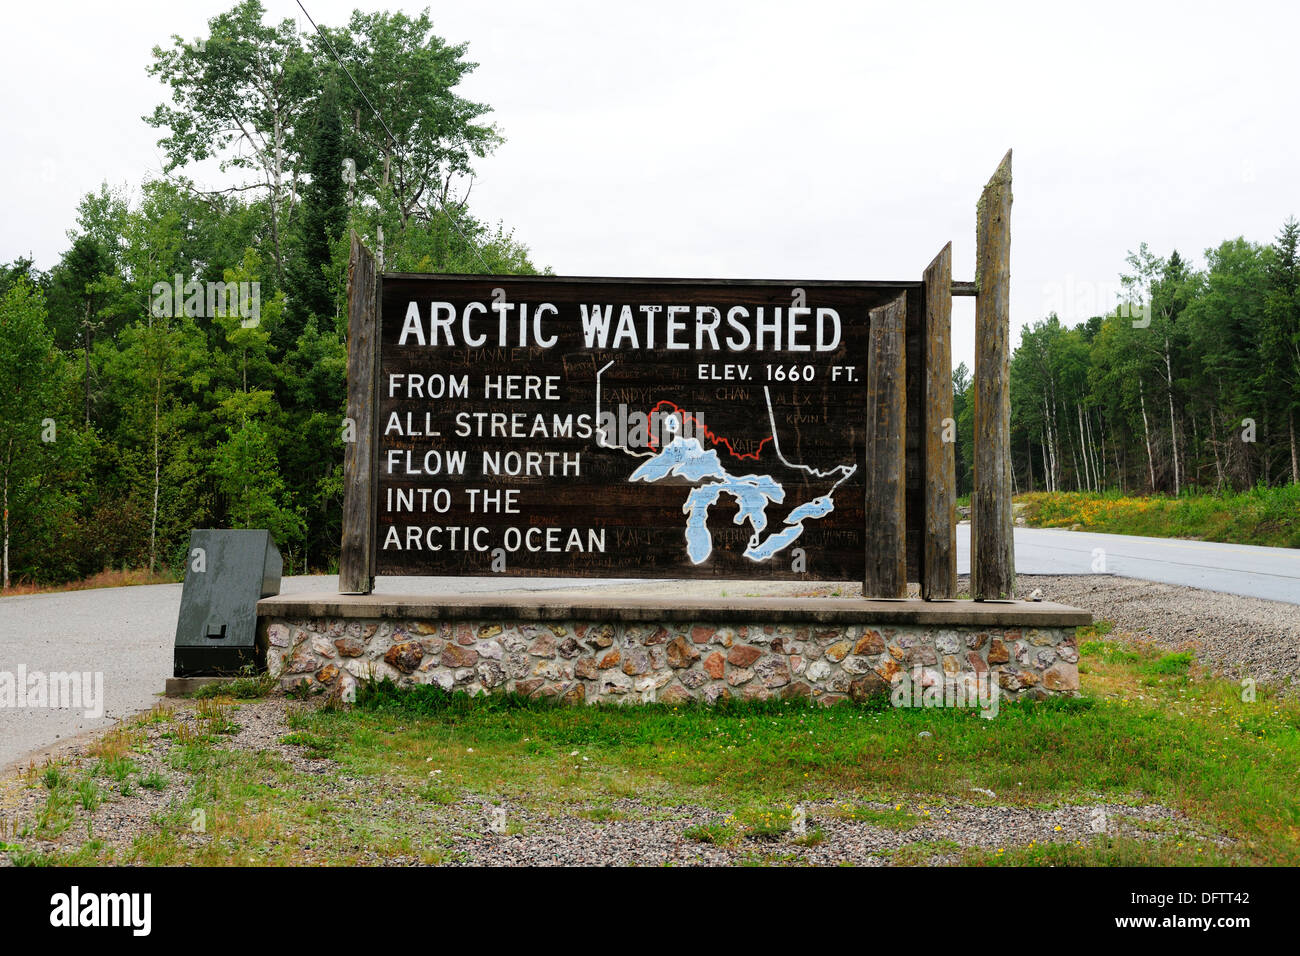 Arctic Watershed on Highway 17 between Winnipeg and Thunder Bay, from here all the streams flow northward into the Arctic Ocean - Stock Image